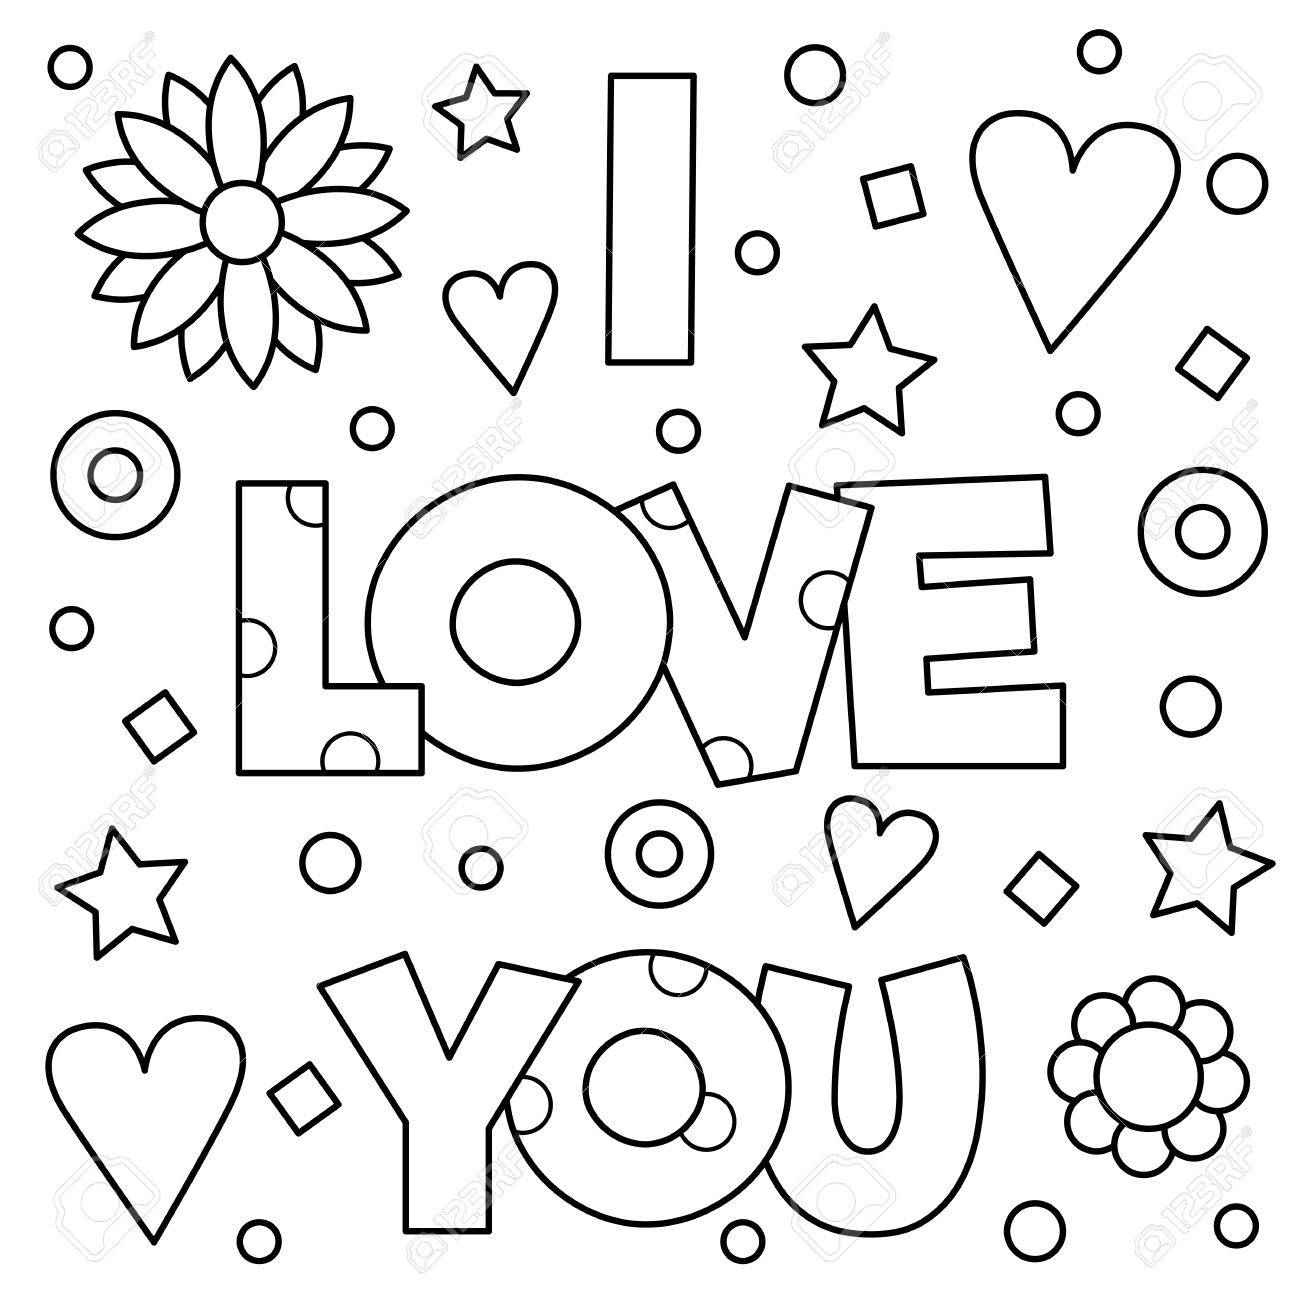 Coloring page. Vector illustration. - 82438265